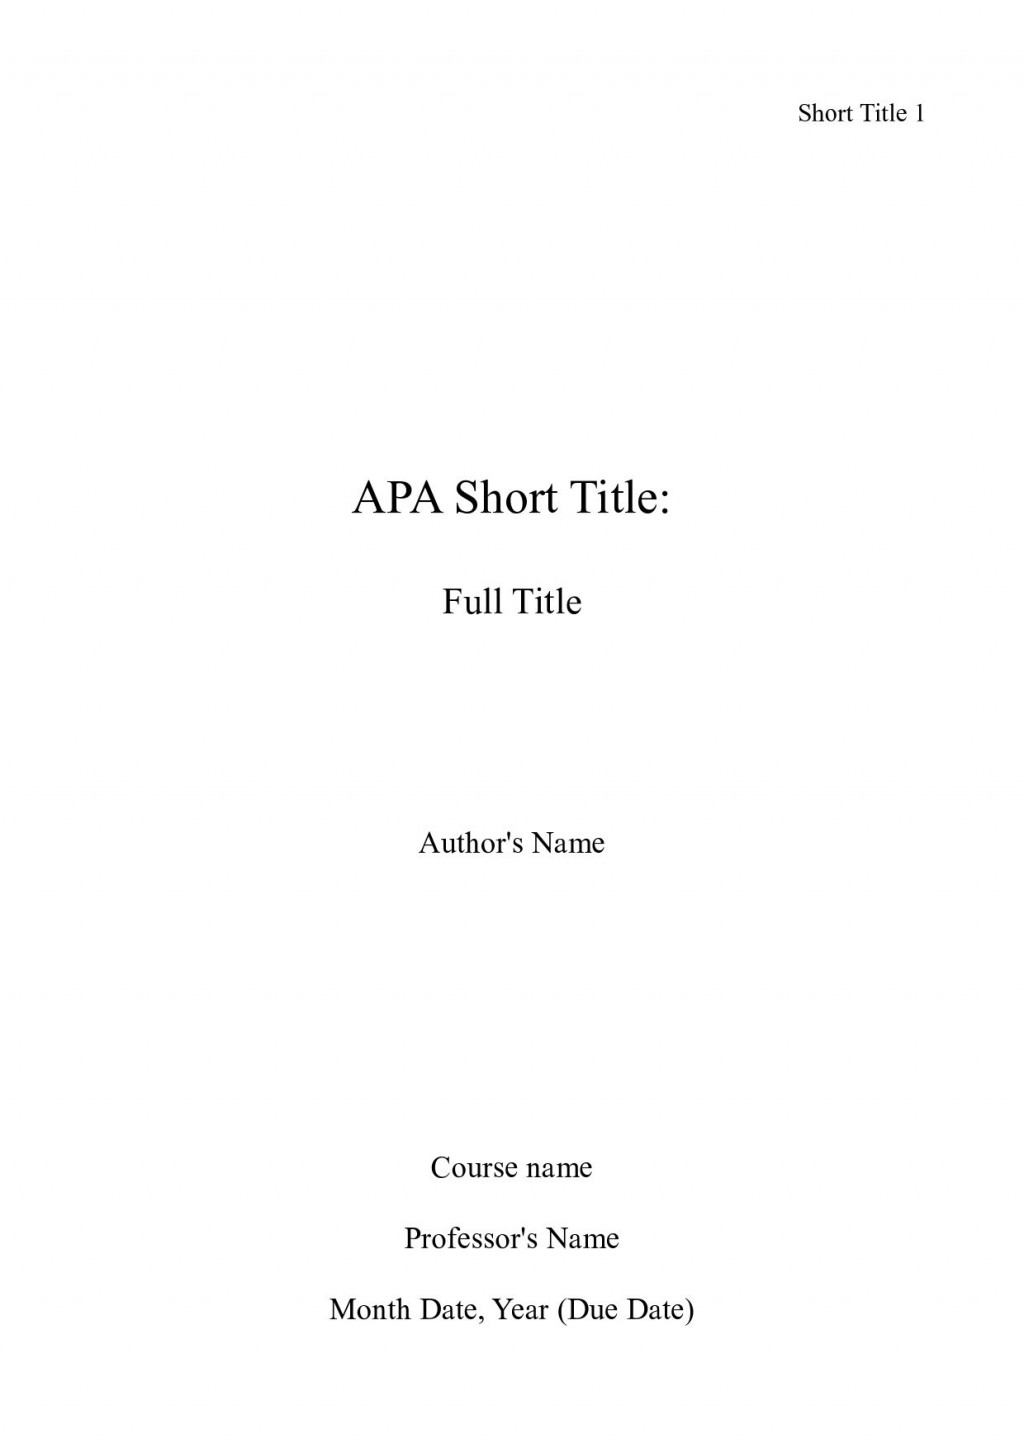 003 Research Paper Cover Page Apa Excellent Reference Format Sample Large